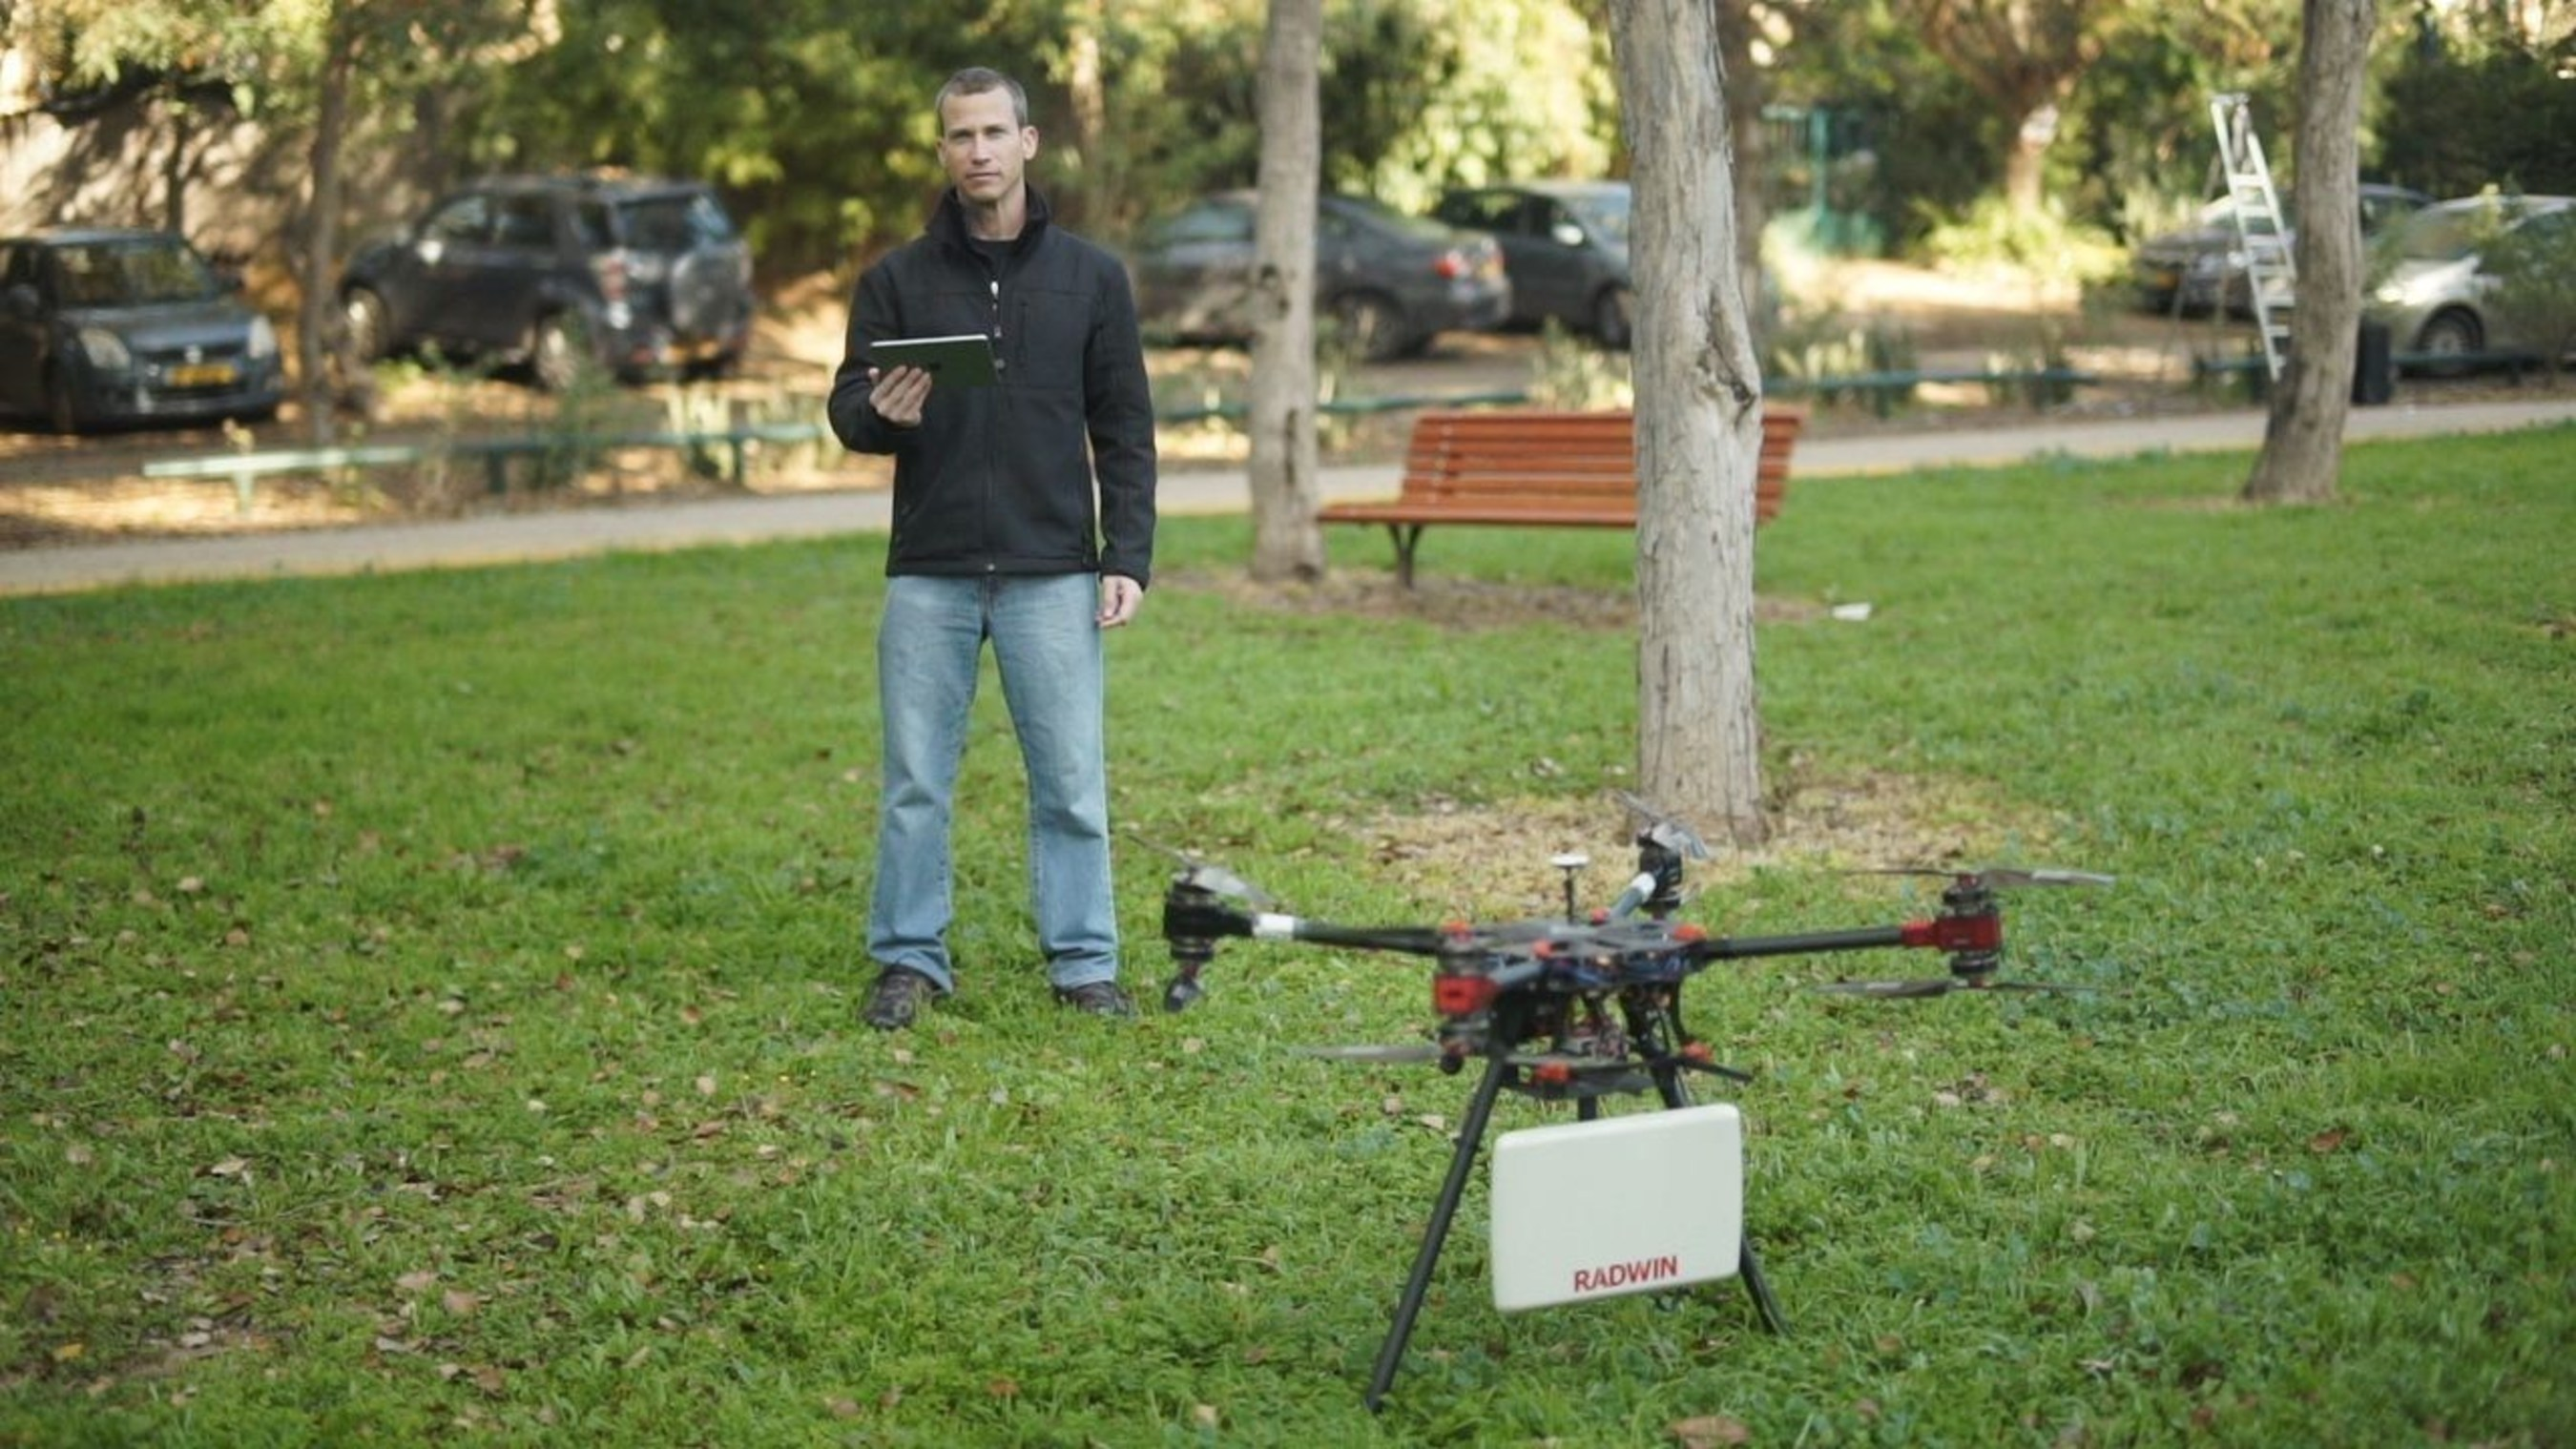 RADWIN Unveils the World's First Drone with Smart Beam